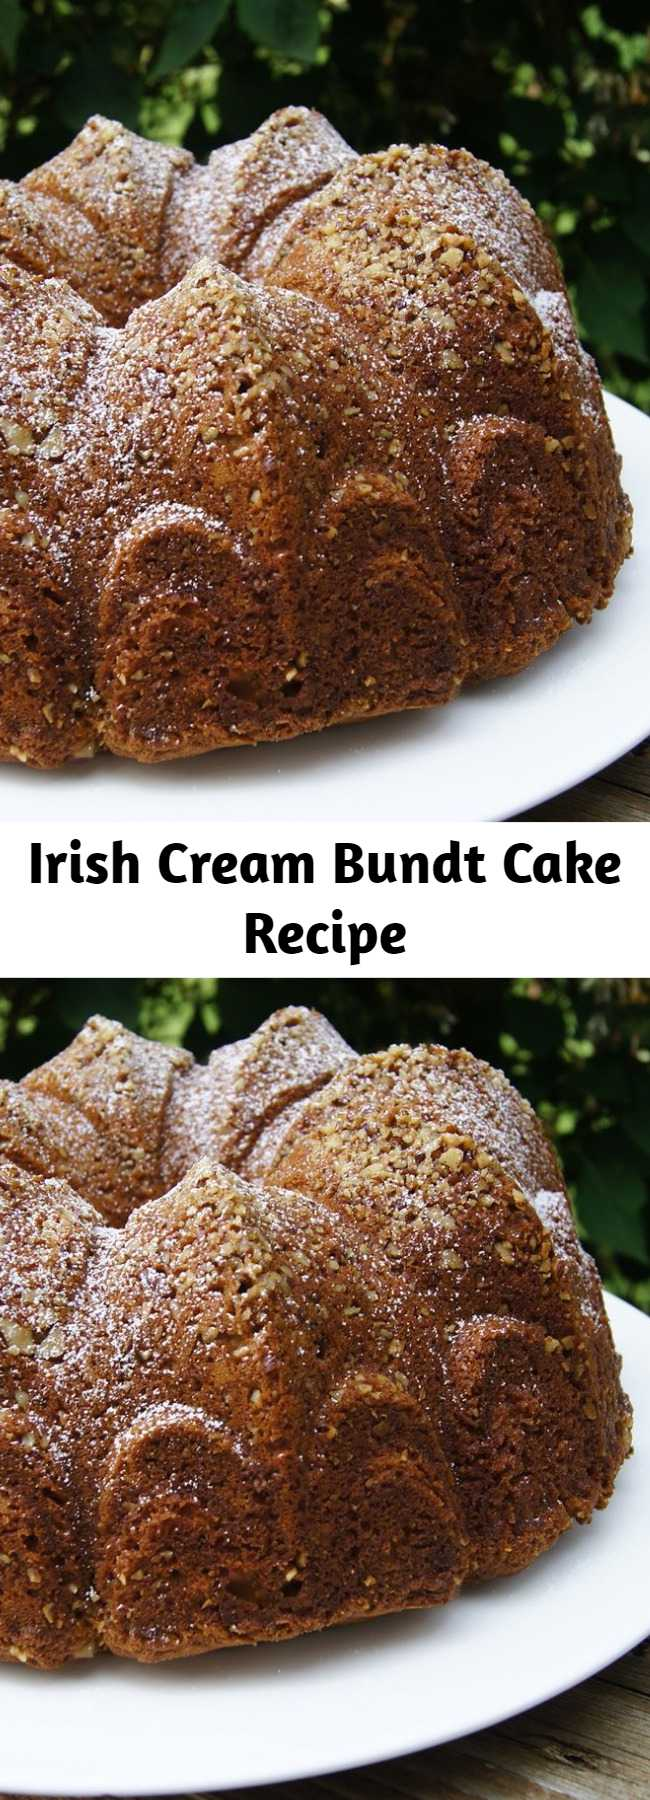 Irish Cream Bundt Cake Recipe - Great tasting glazed Bundt cake with Irish cream baked in. Excellent for any time or any occasion.